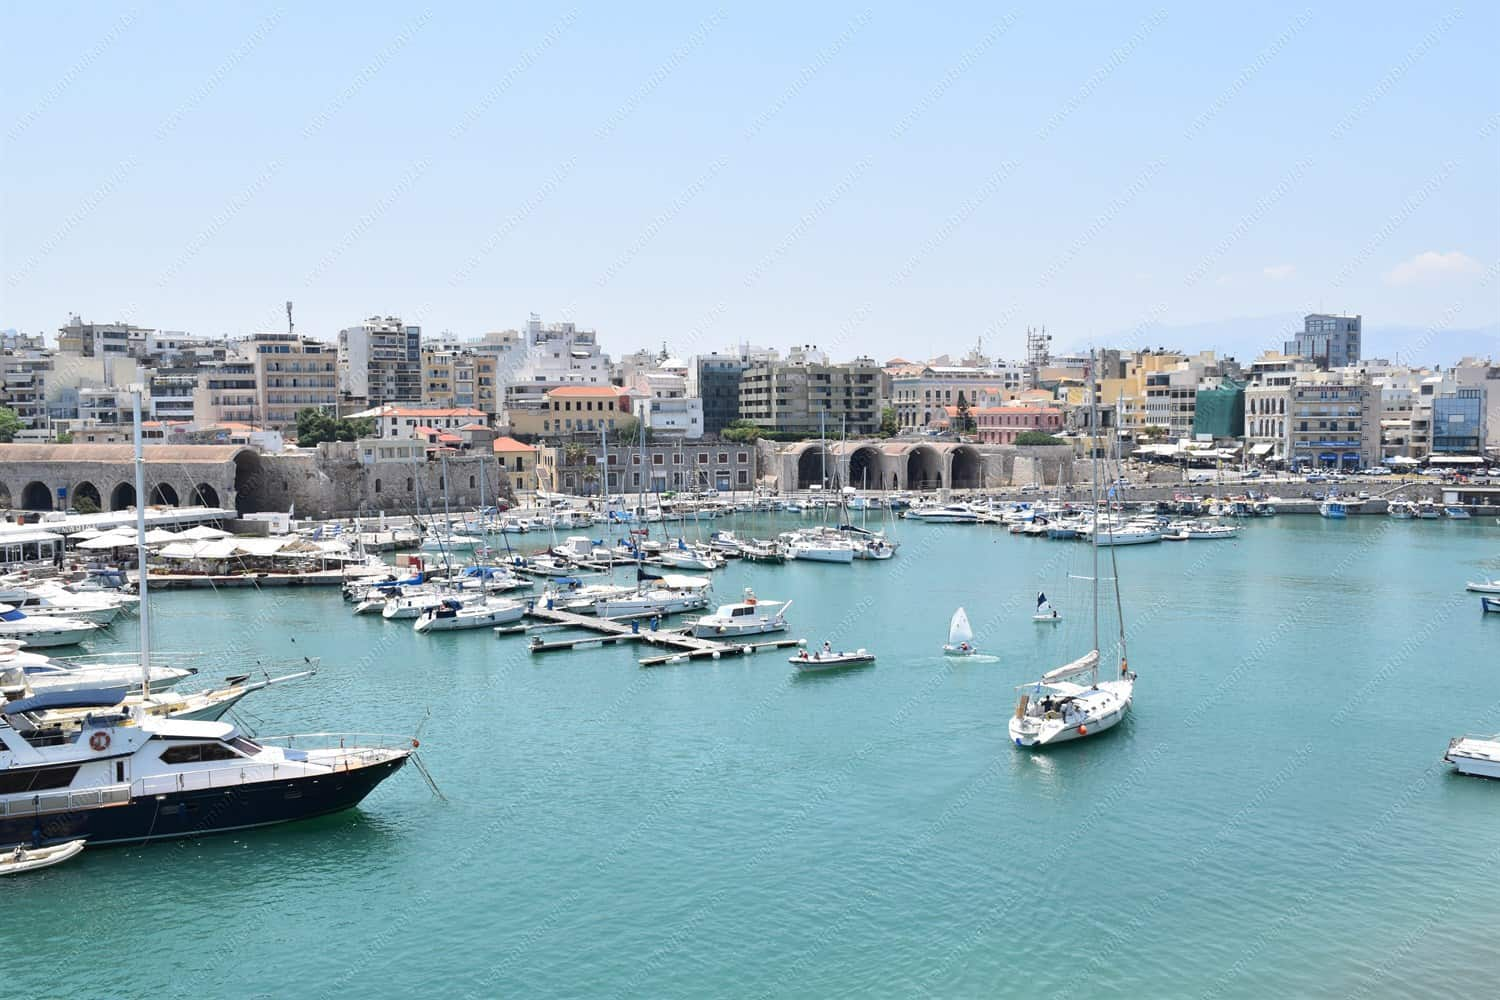 7 Top Things To Do In Heraklion, Crete